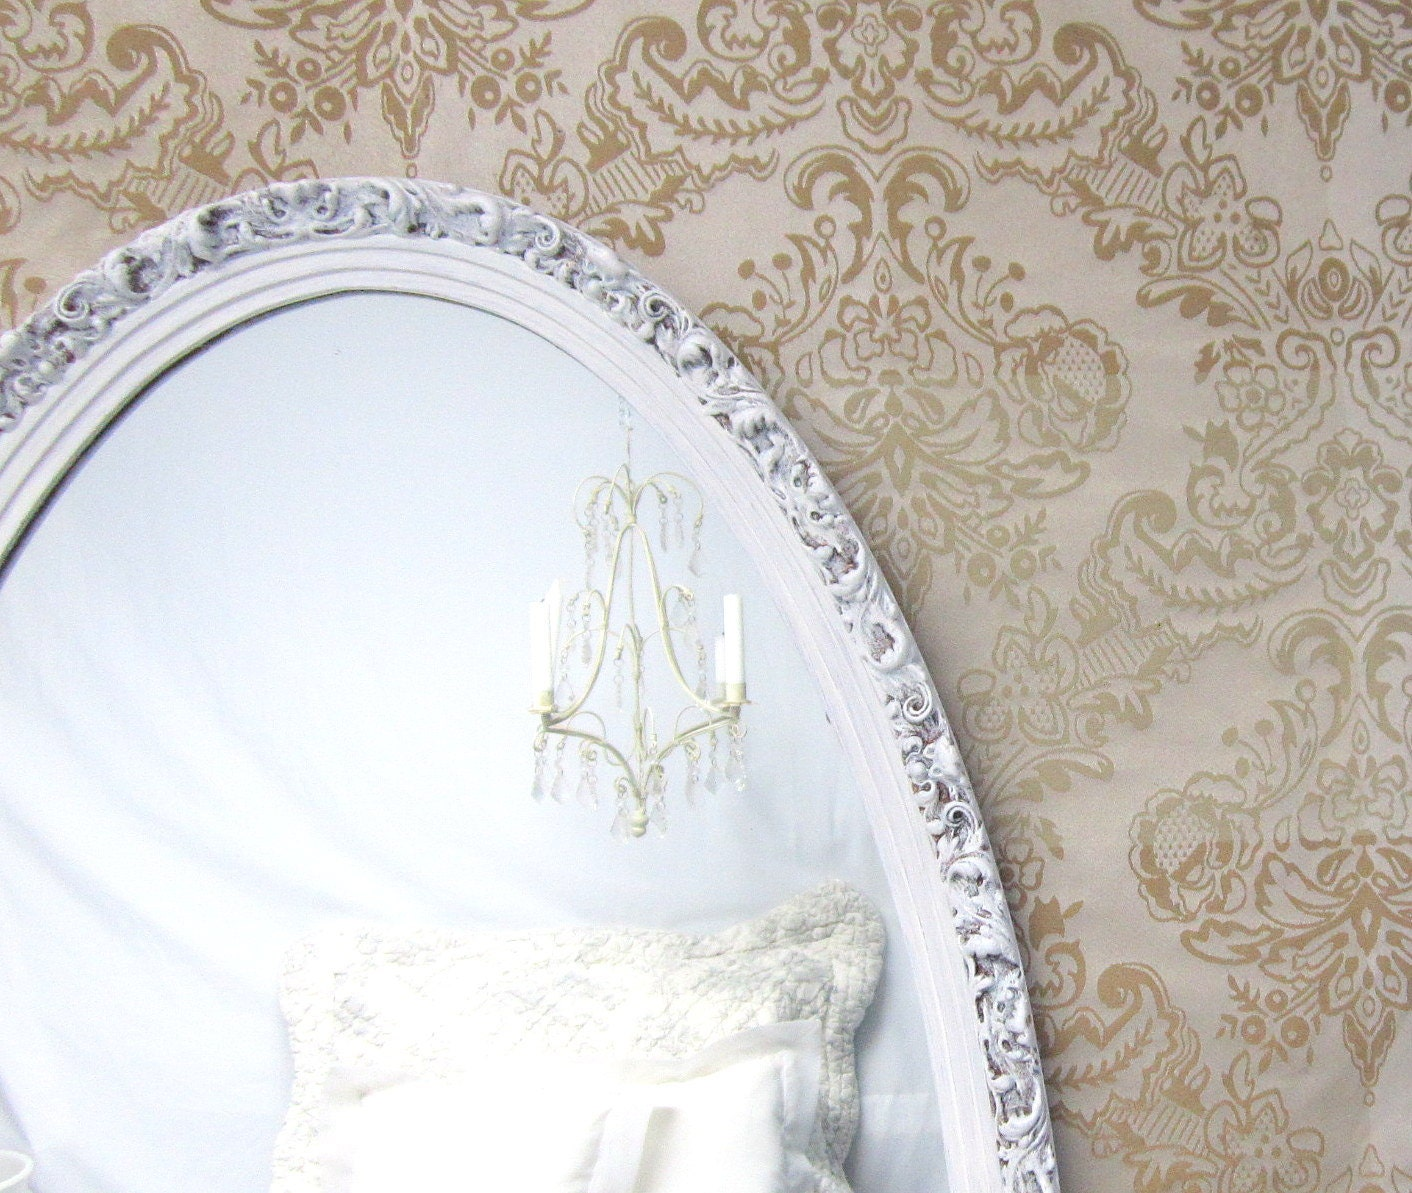 Decorative vintage mirrors for sale large oval by for Fancy wall mirrors for sale